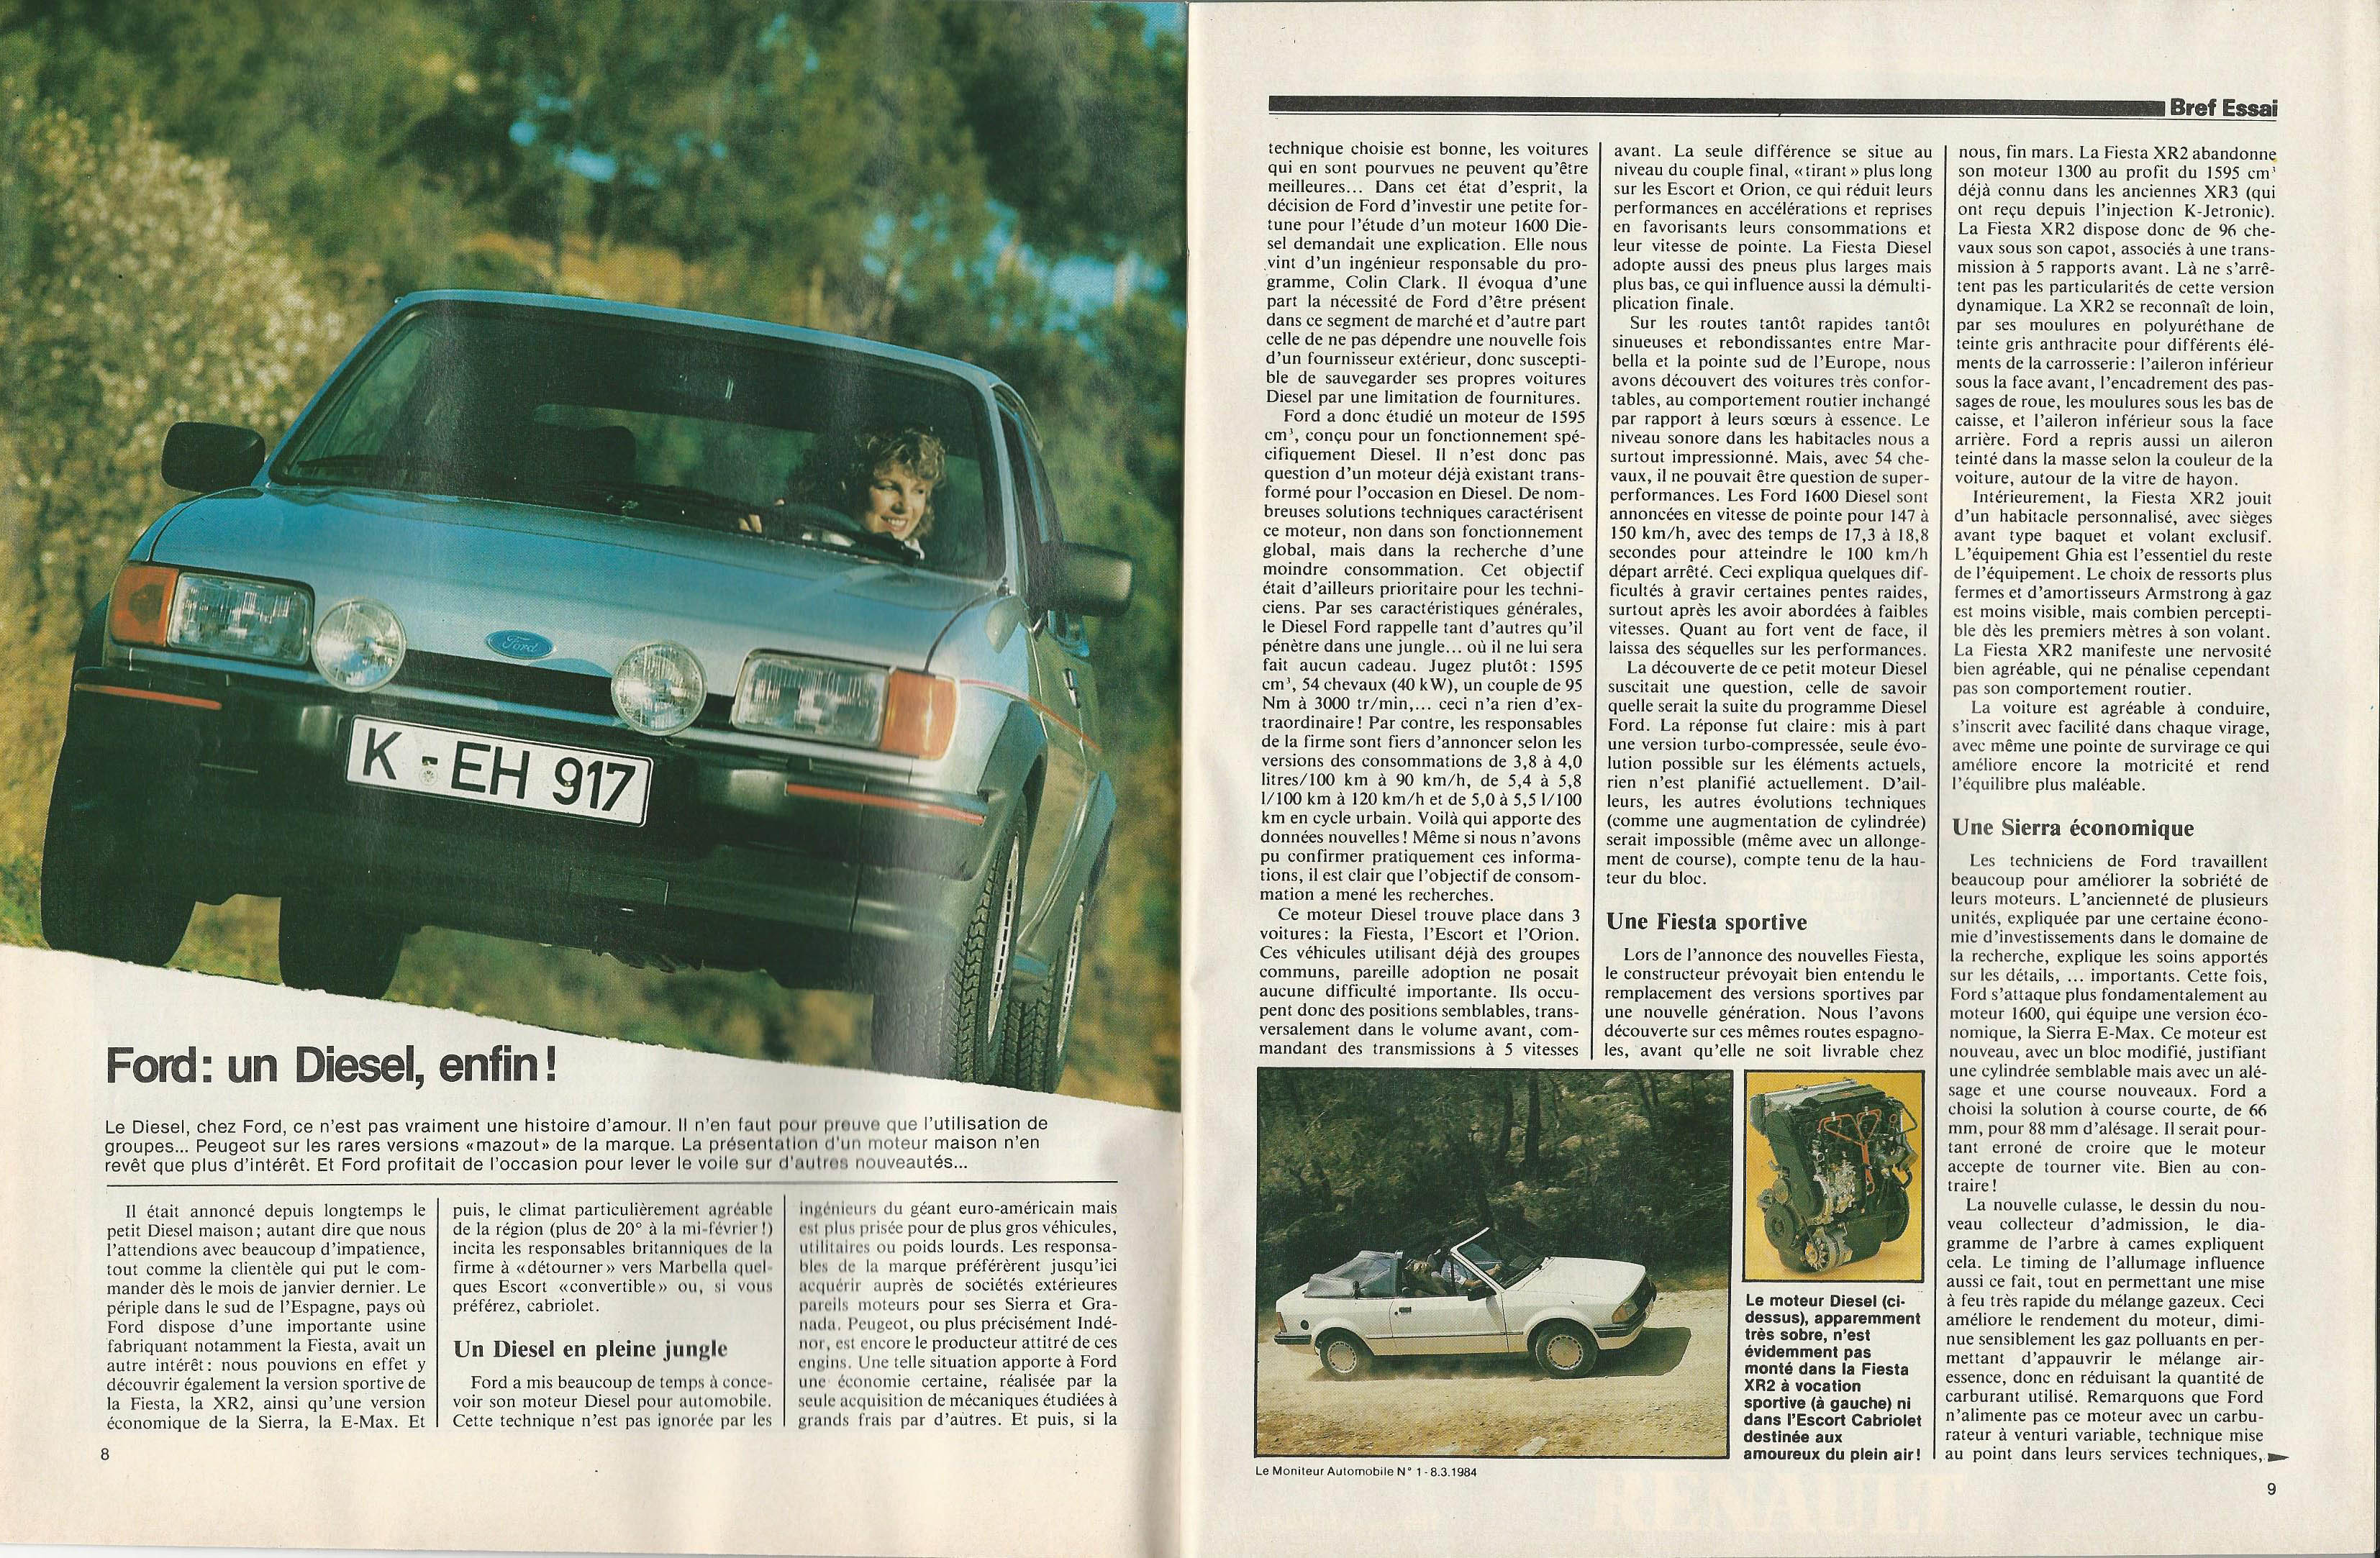 Moniteur Automobile 01 - 08 Mars 1984 (5)